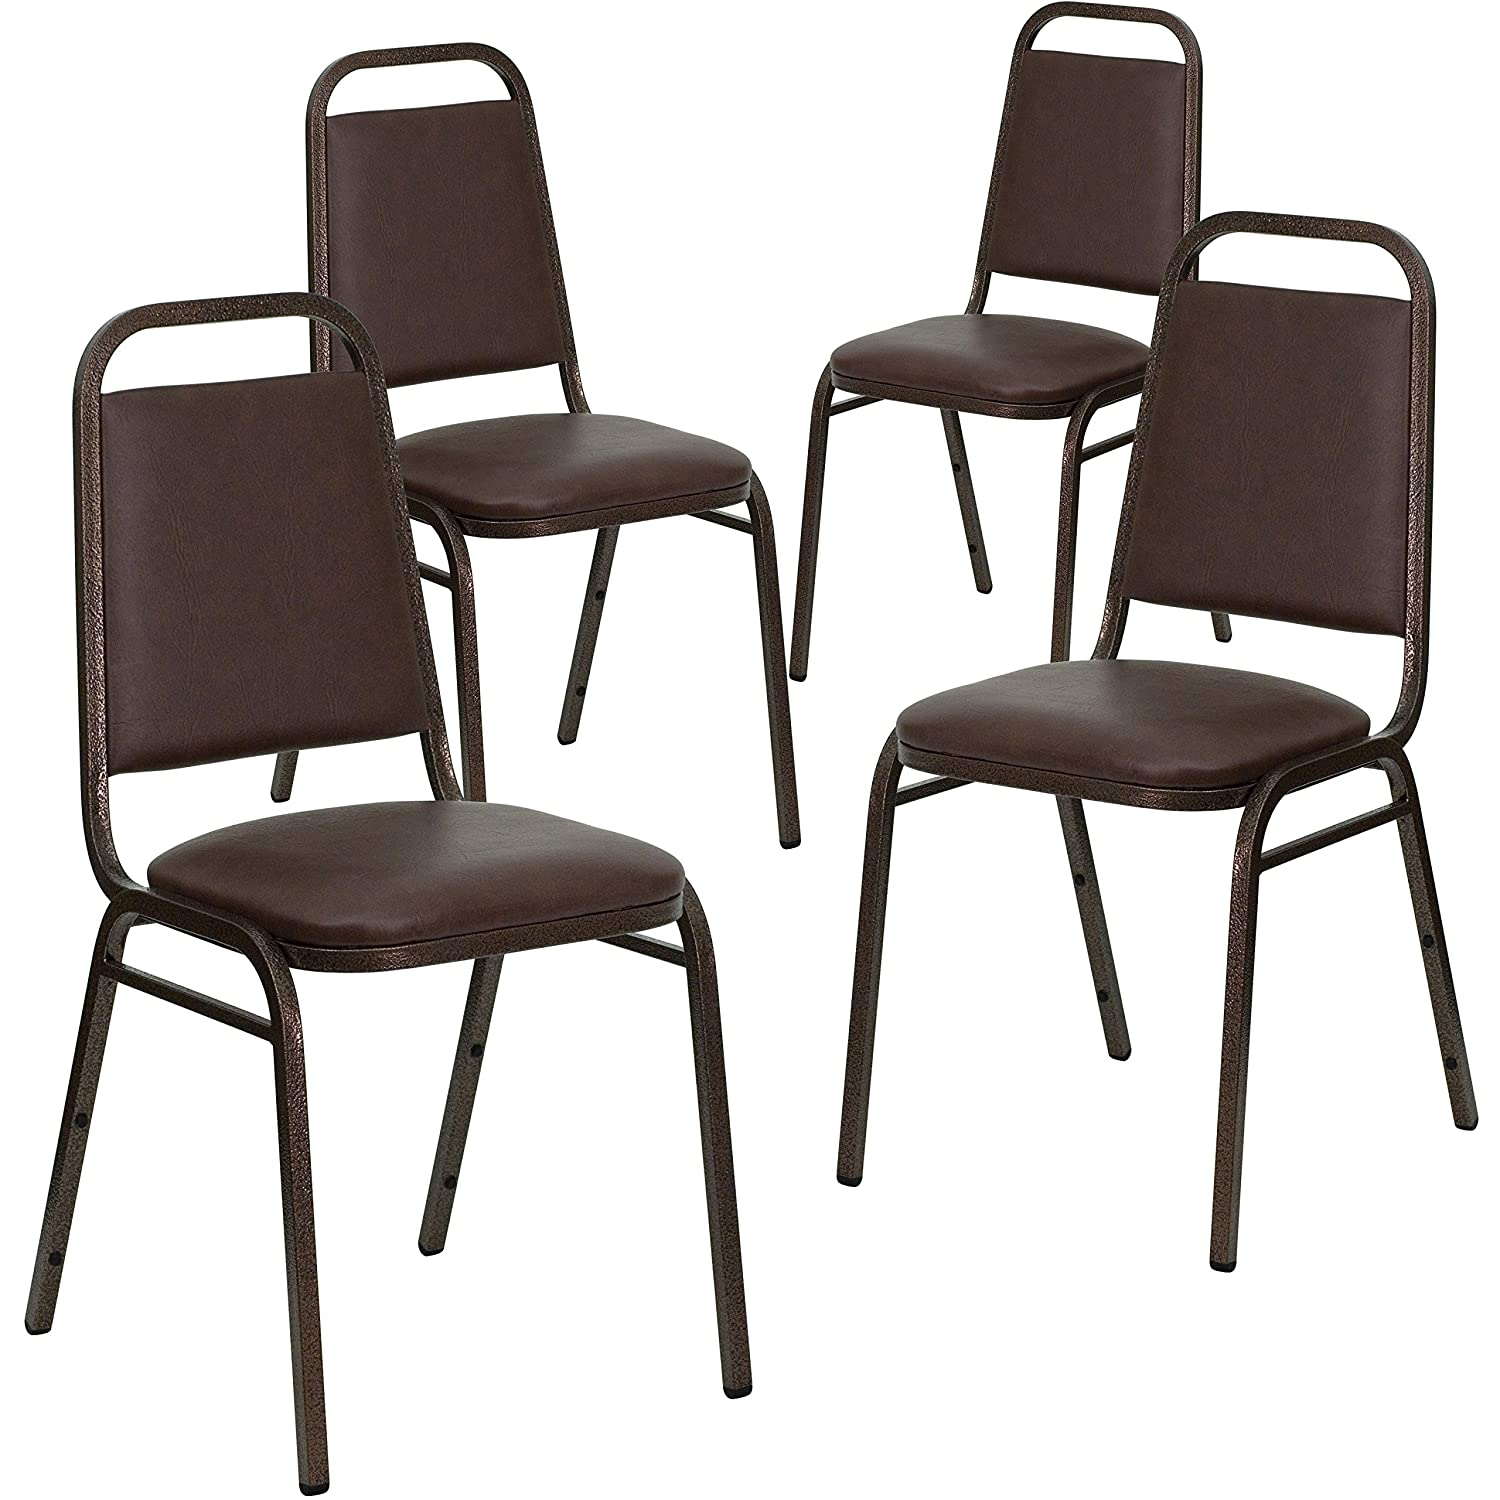 Flash Furniture 4 Pk. HERCULES Series Trapezoidal Back Stacking Banquet Chair in Brown Vinyl – Copper Vein Frame